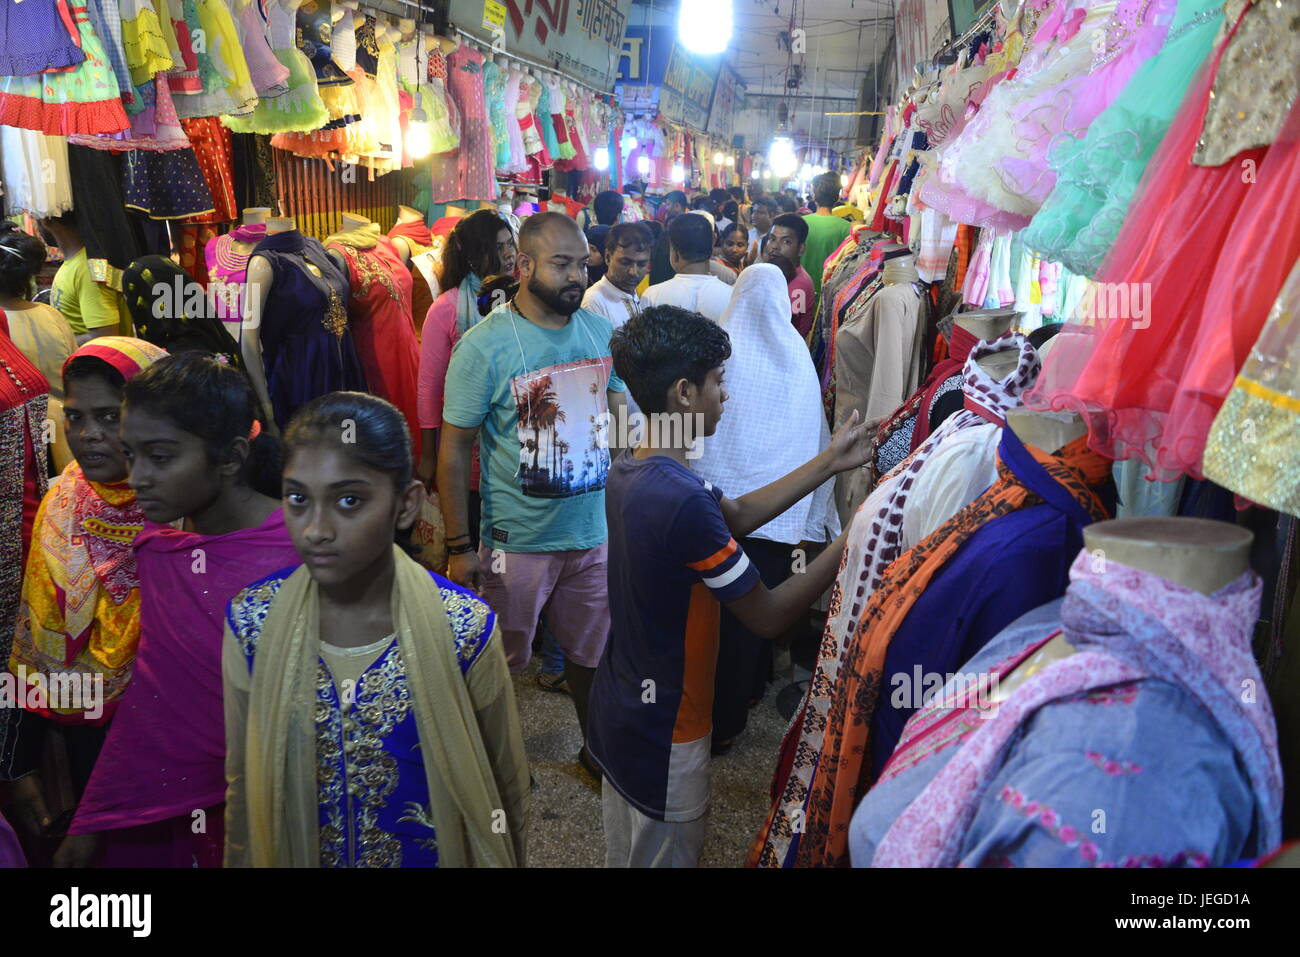 Most Inspiring Bangladesh Eid Al-Fitr Feast - bangladeshi-muslim-peoples-busy-in-shopping-at-new-market-ahead-of-JEGD1A  Collection_479190 .jpg